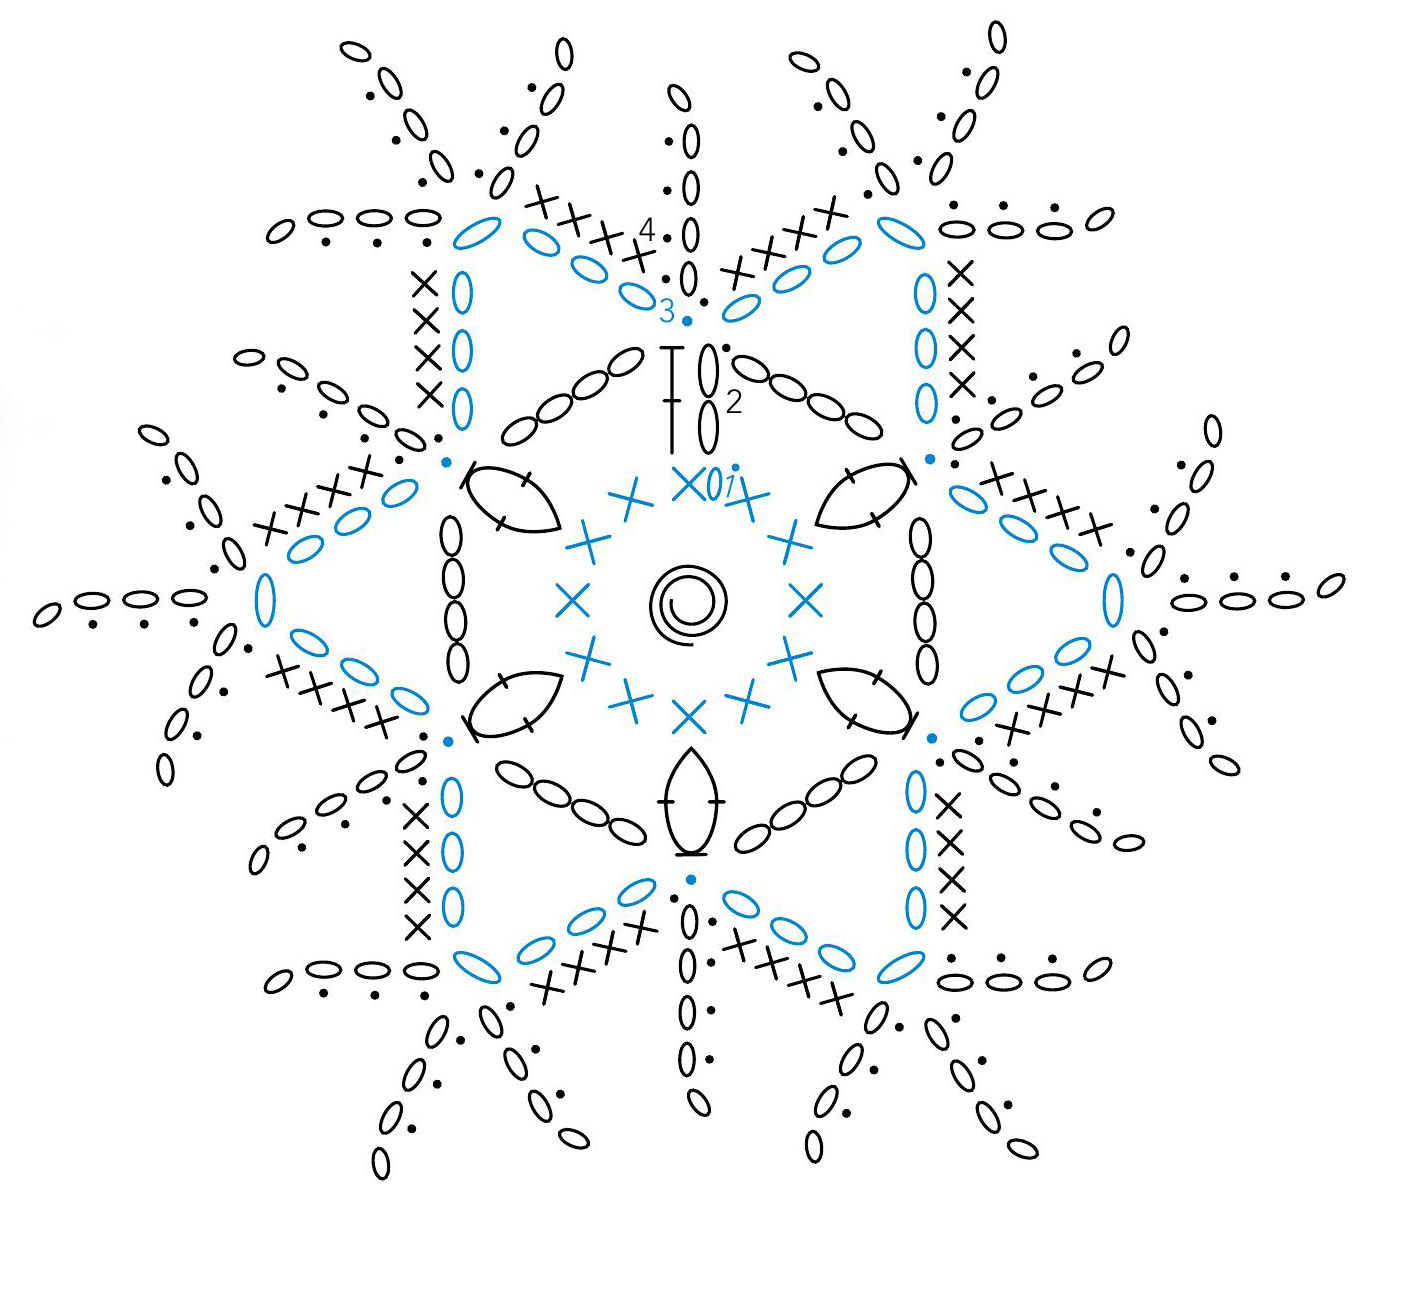 Snowflake Crochet Diagram Crochet Kingdom